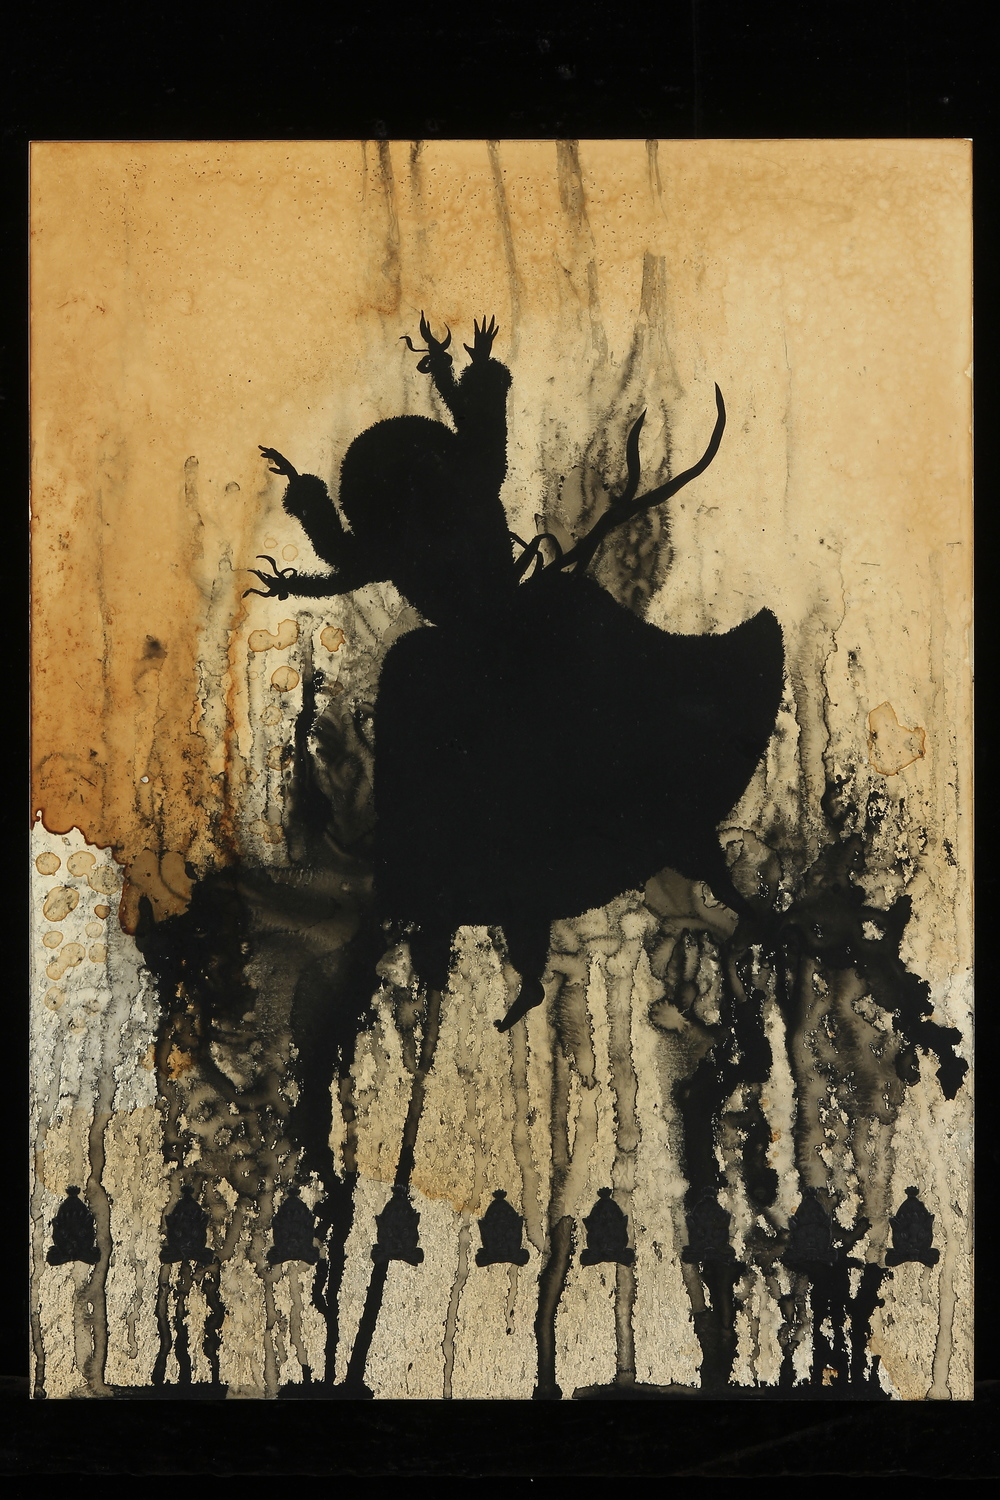 """Das Maedchen in Flammen   (The Girl in Flames)     24"""" x 18"""", s  umi ink and tea on panel, 2012"""